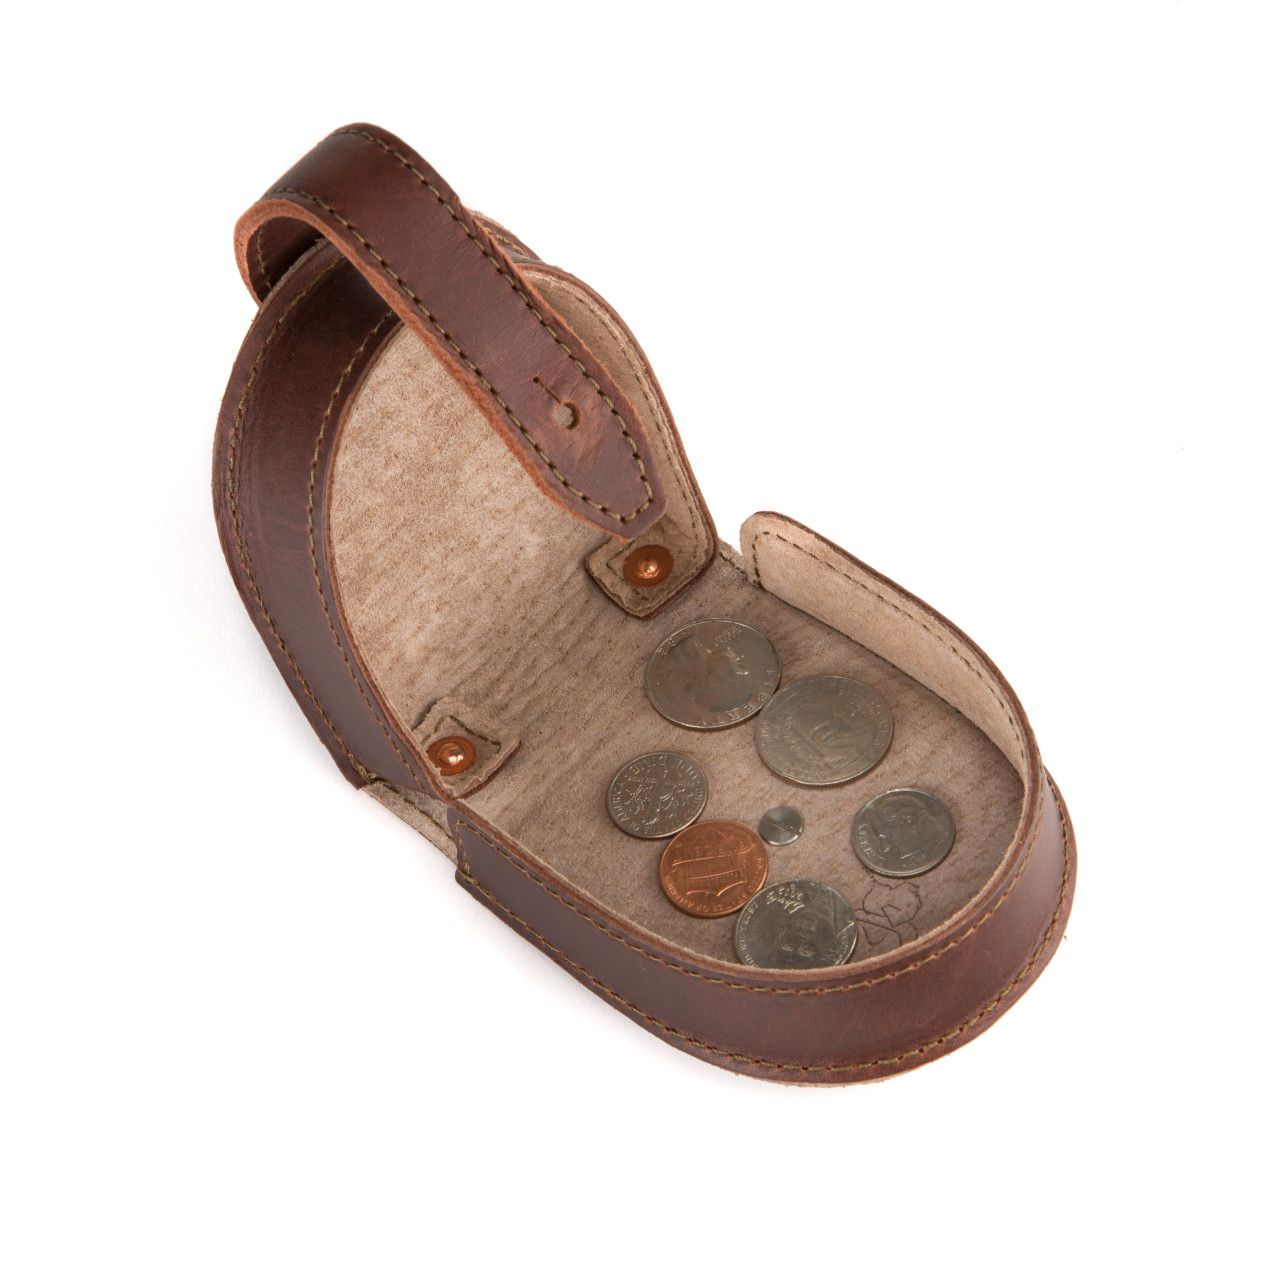 leather coin purse in chestnut leather with fine coins